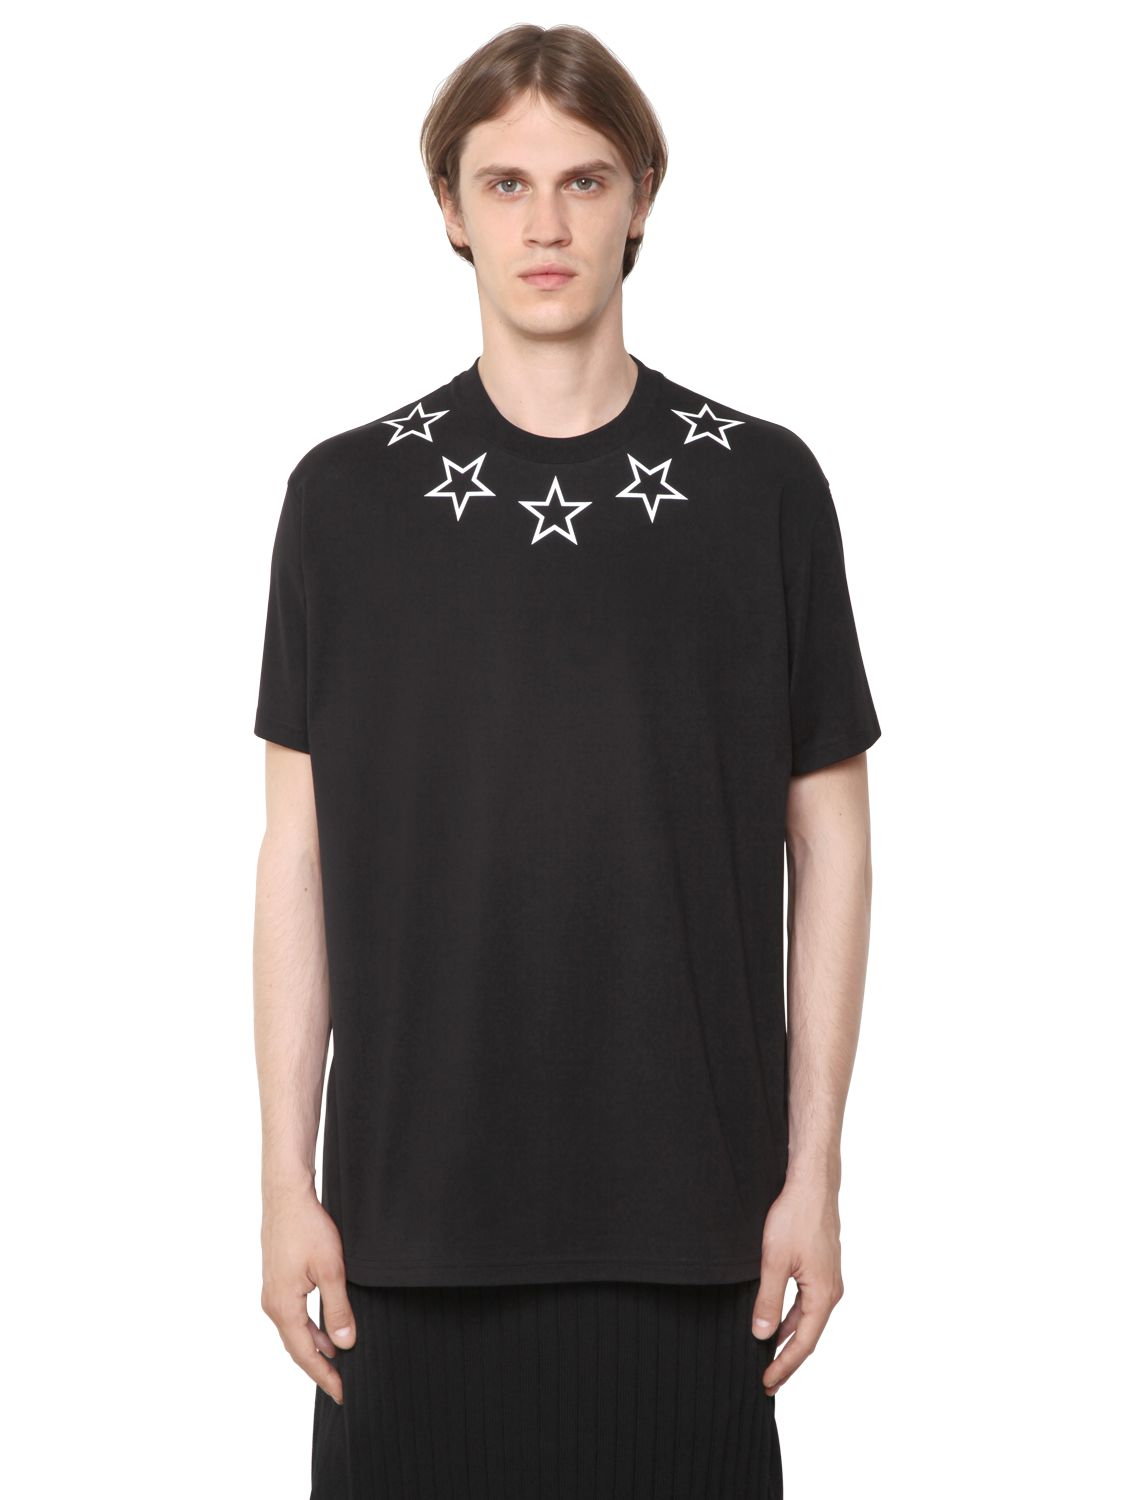 Givenchy cuban stars print cotton jersey t shirt in black for Givenchy t shirt man